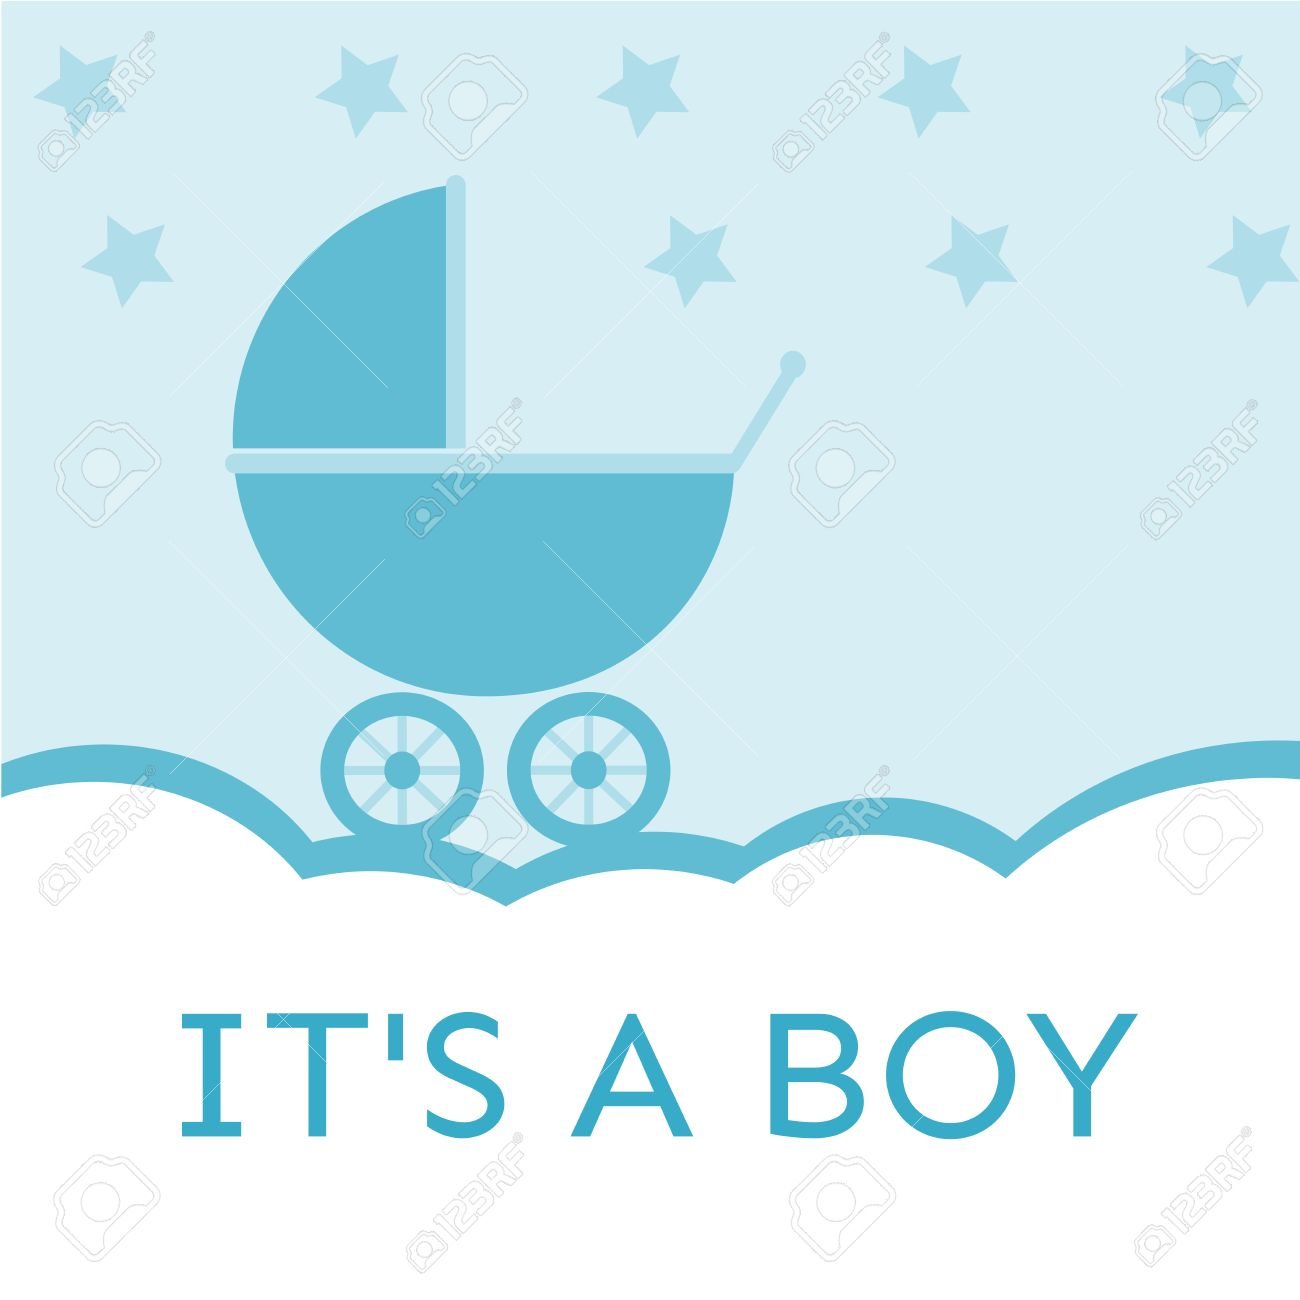 It\'s A Boy Baby Shower Invitation Royalty Free Cliparts, Vectors ...